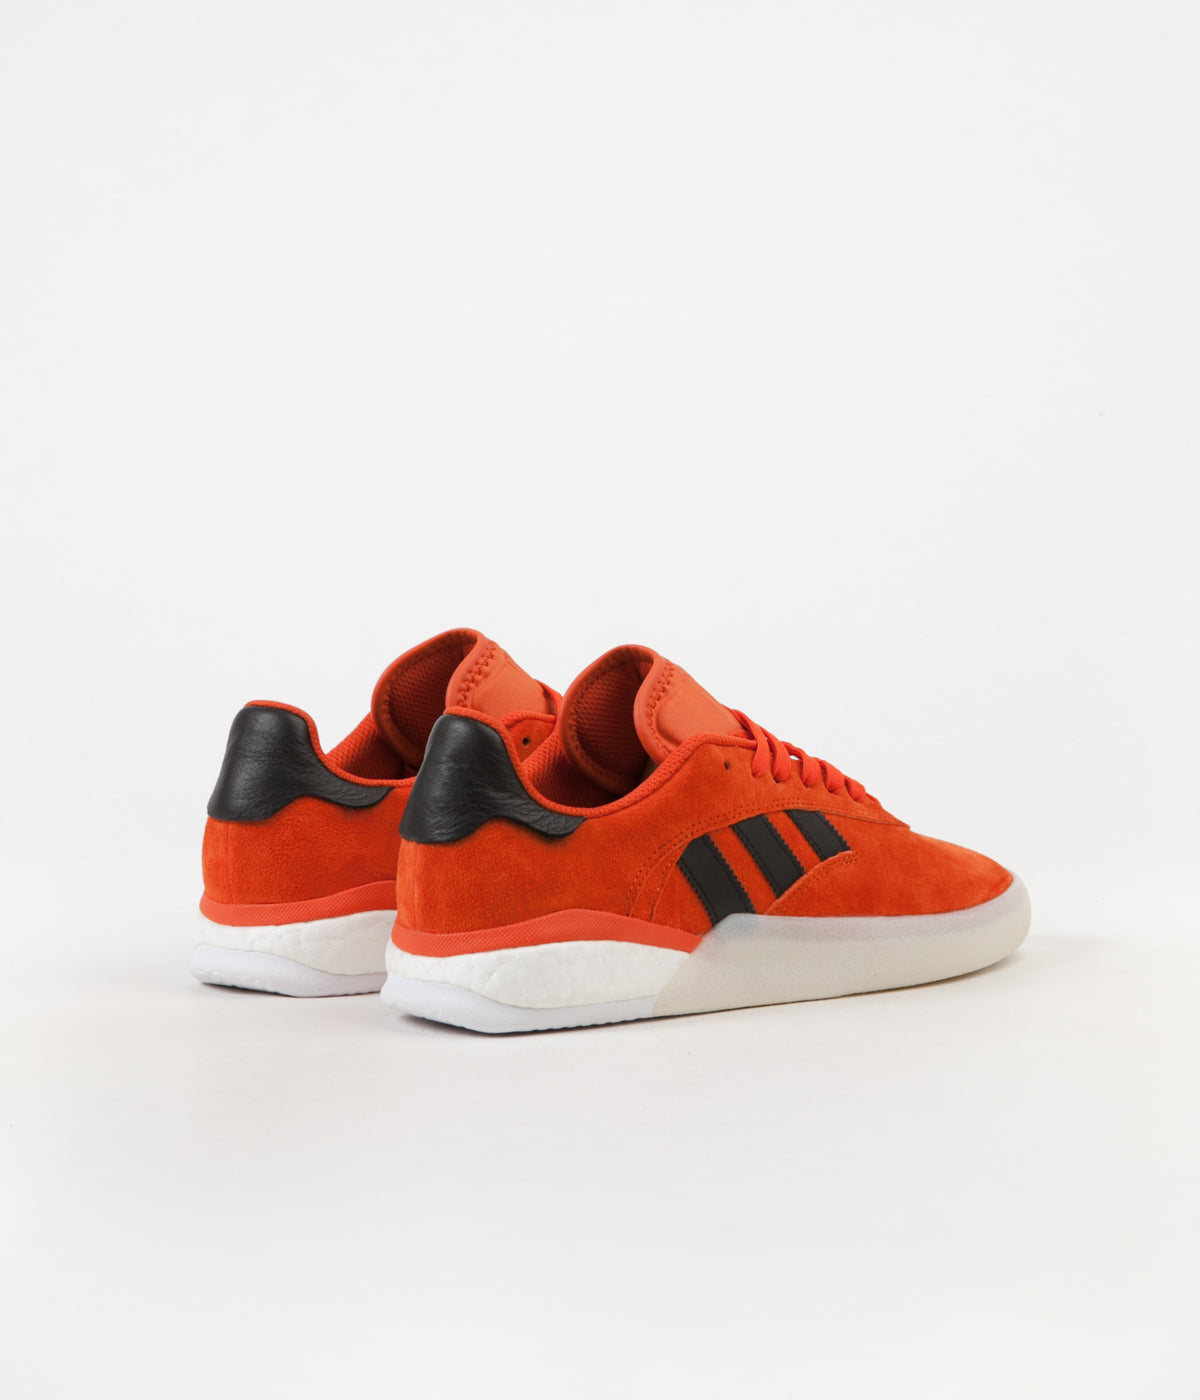 Core Orange Collegiate Black WhiteFlatspot 004 Adidas 3st Shoes 0w8vmNn